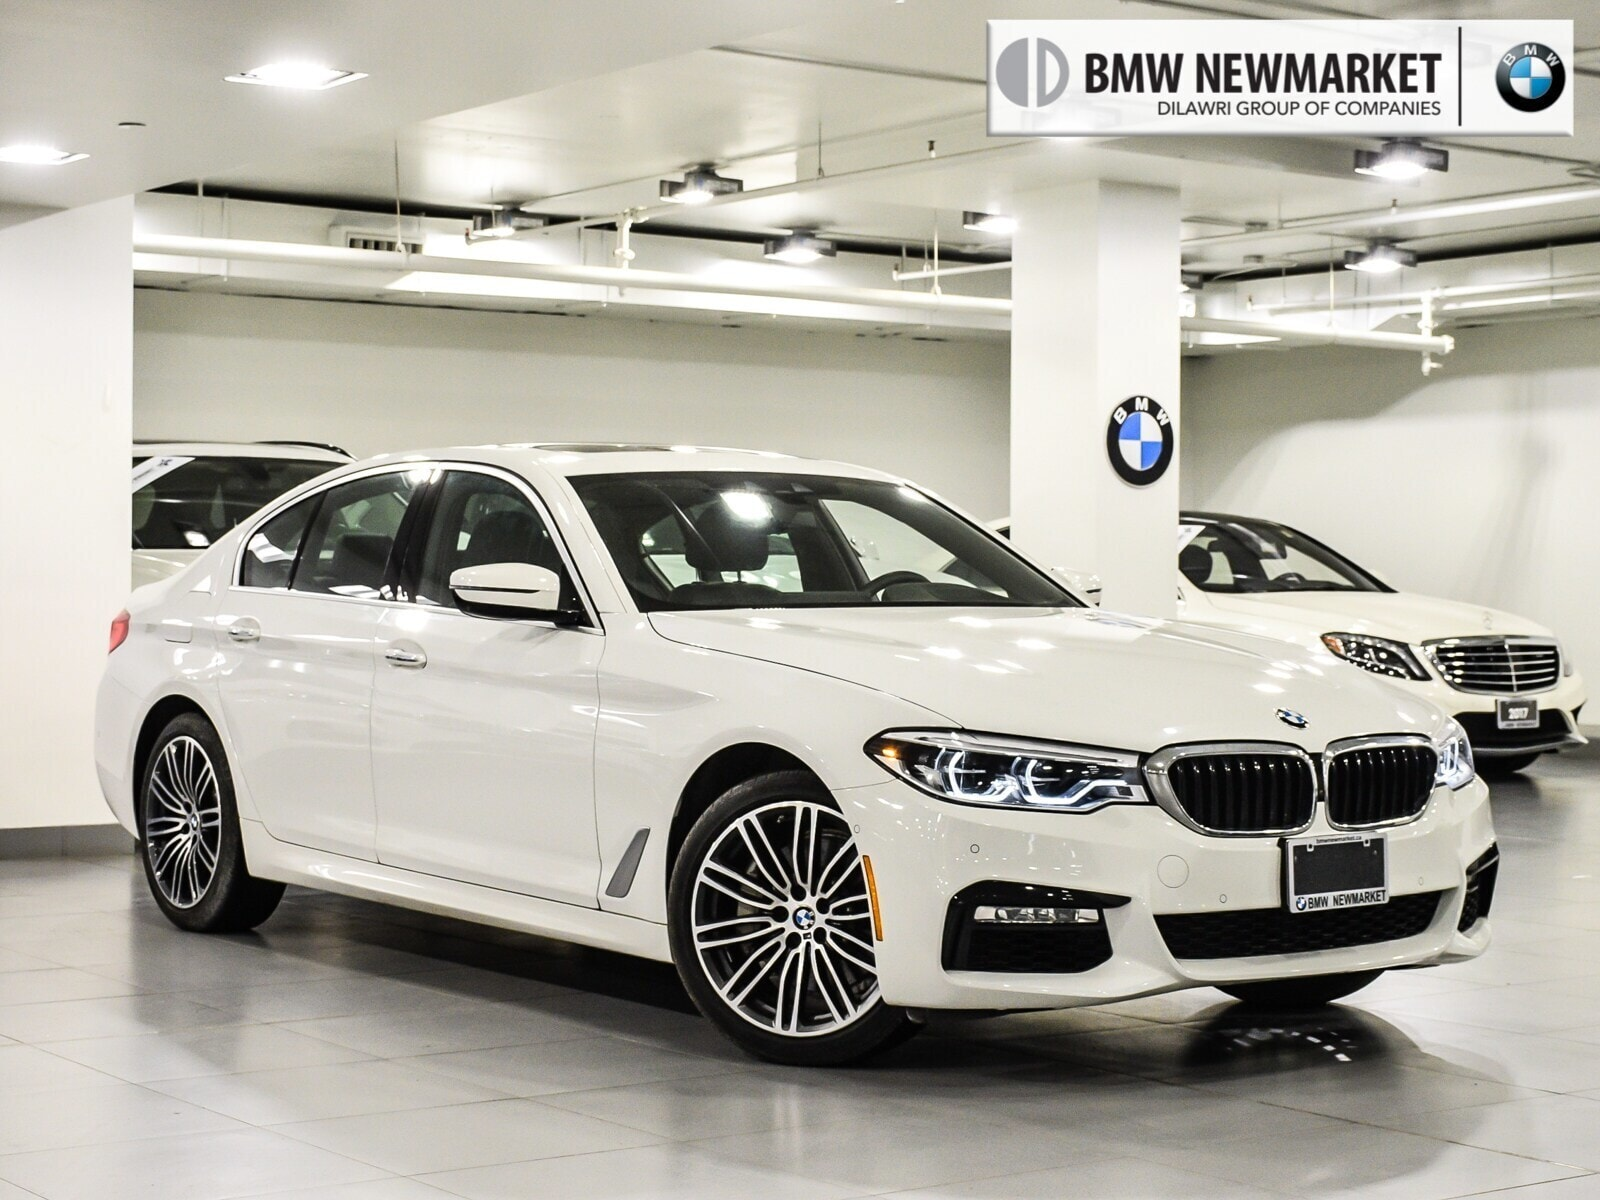 2018 BMW 530i xDrive Sedan CLEARANCE PRICE!! LEASE PROGRAM ENDS MAY31ST!!